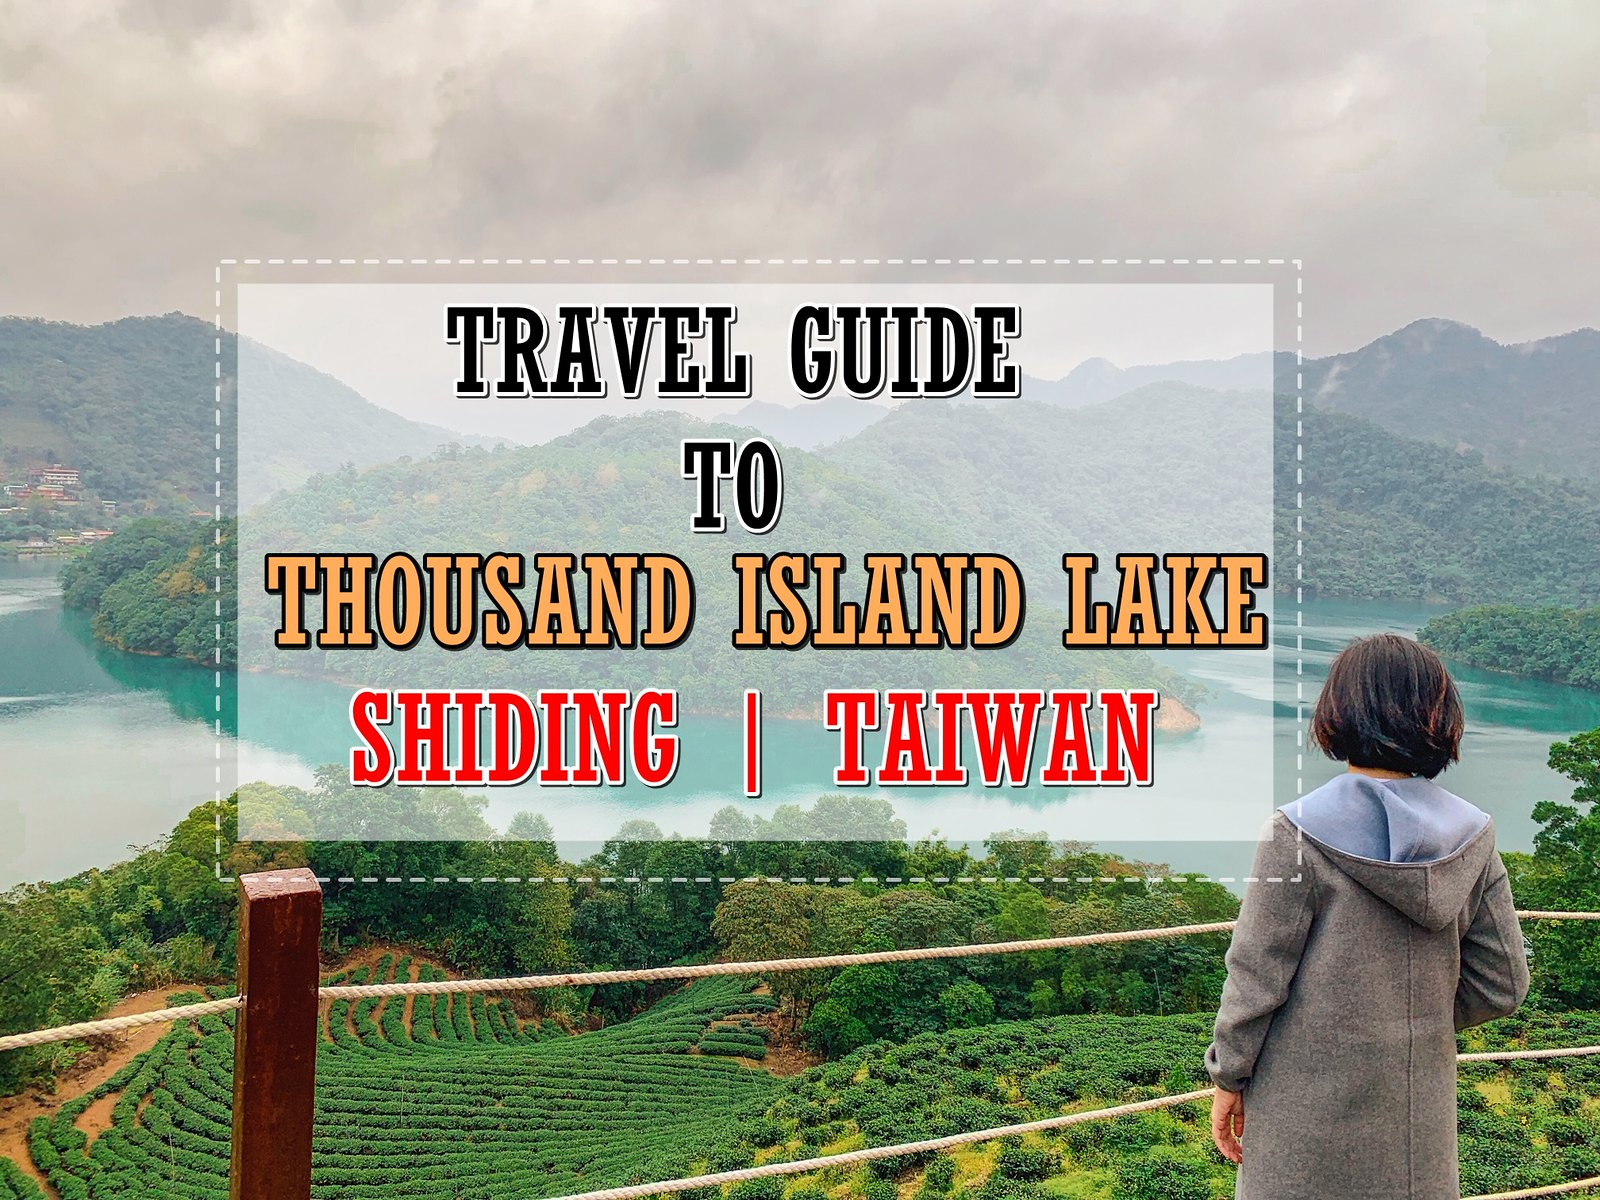 [TAIWAN TRAVELS] A Half Day Trip to Shiding Thousand Island Lake from Taipei- The Hidden Gem